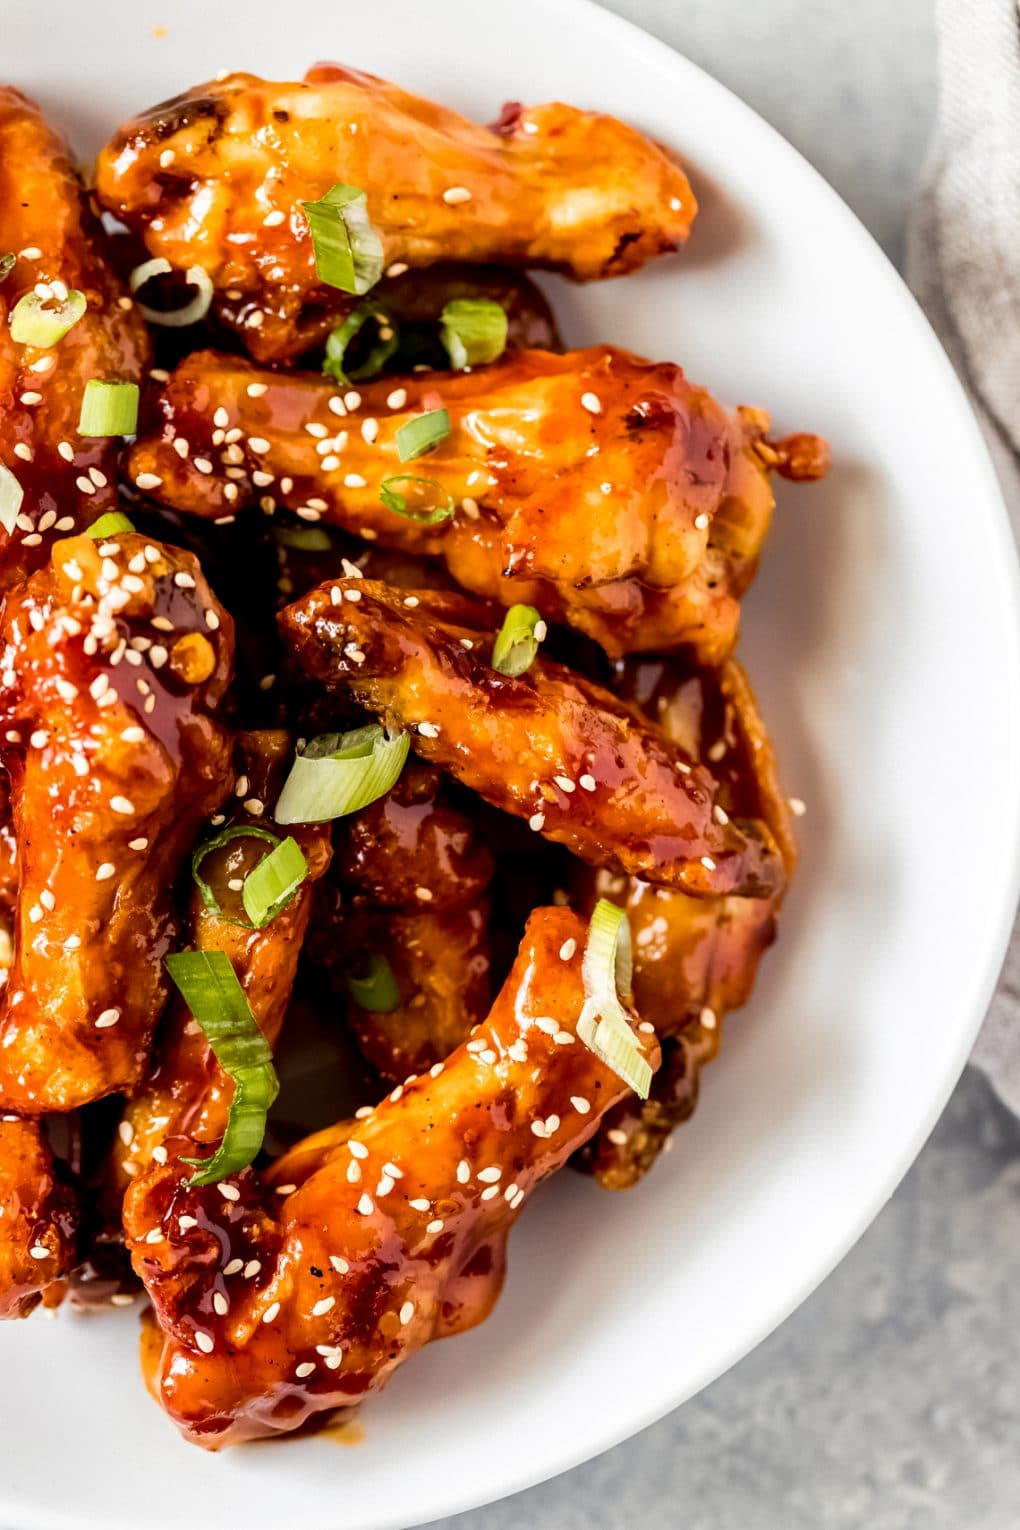 a plate of air fryer general tso's chicken wings